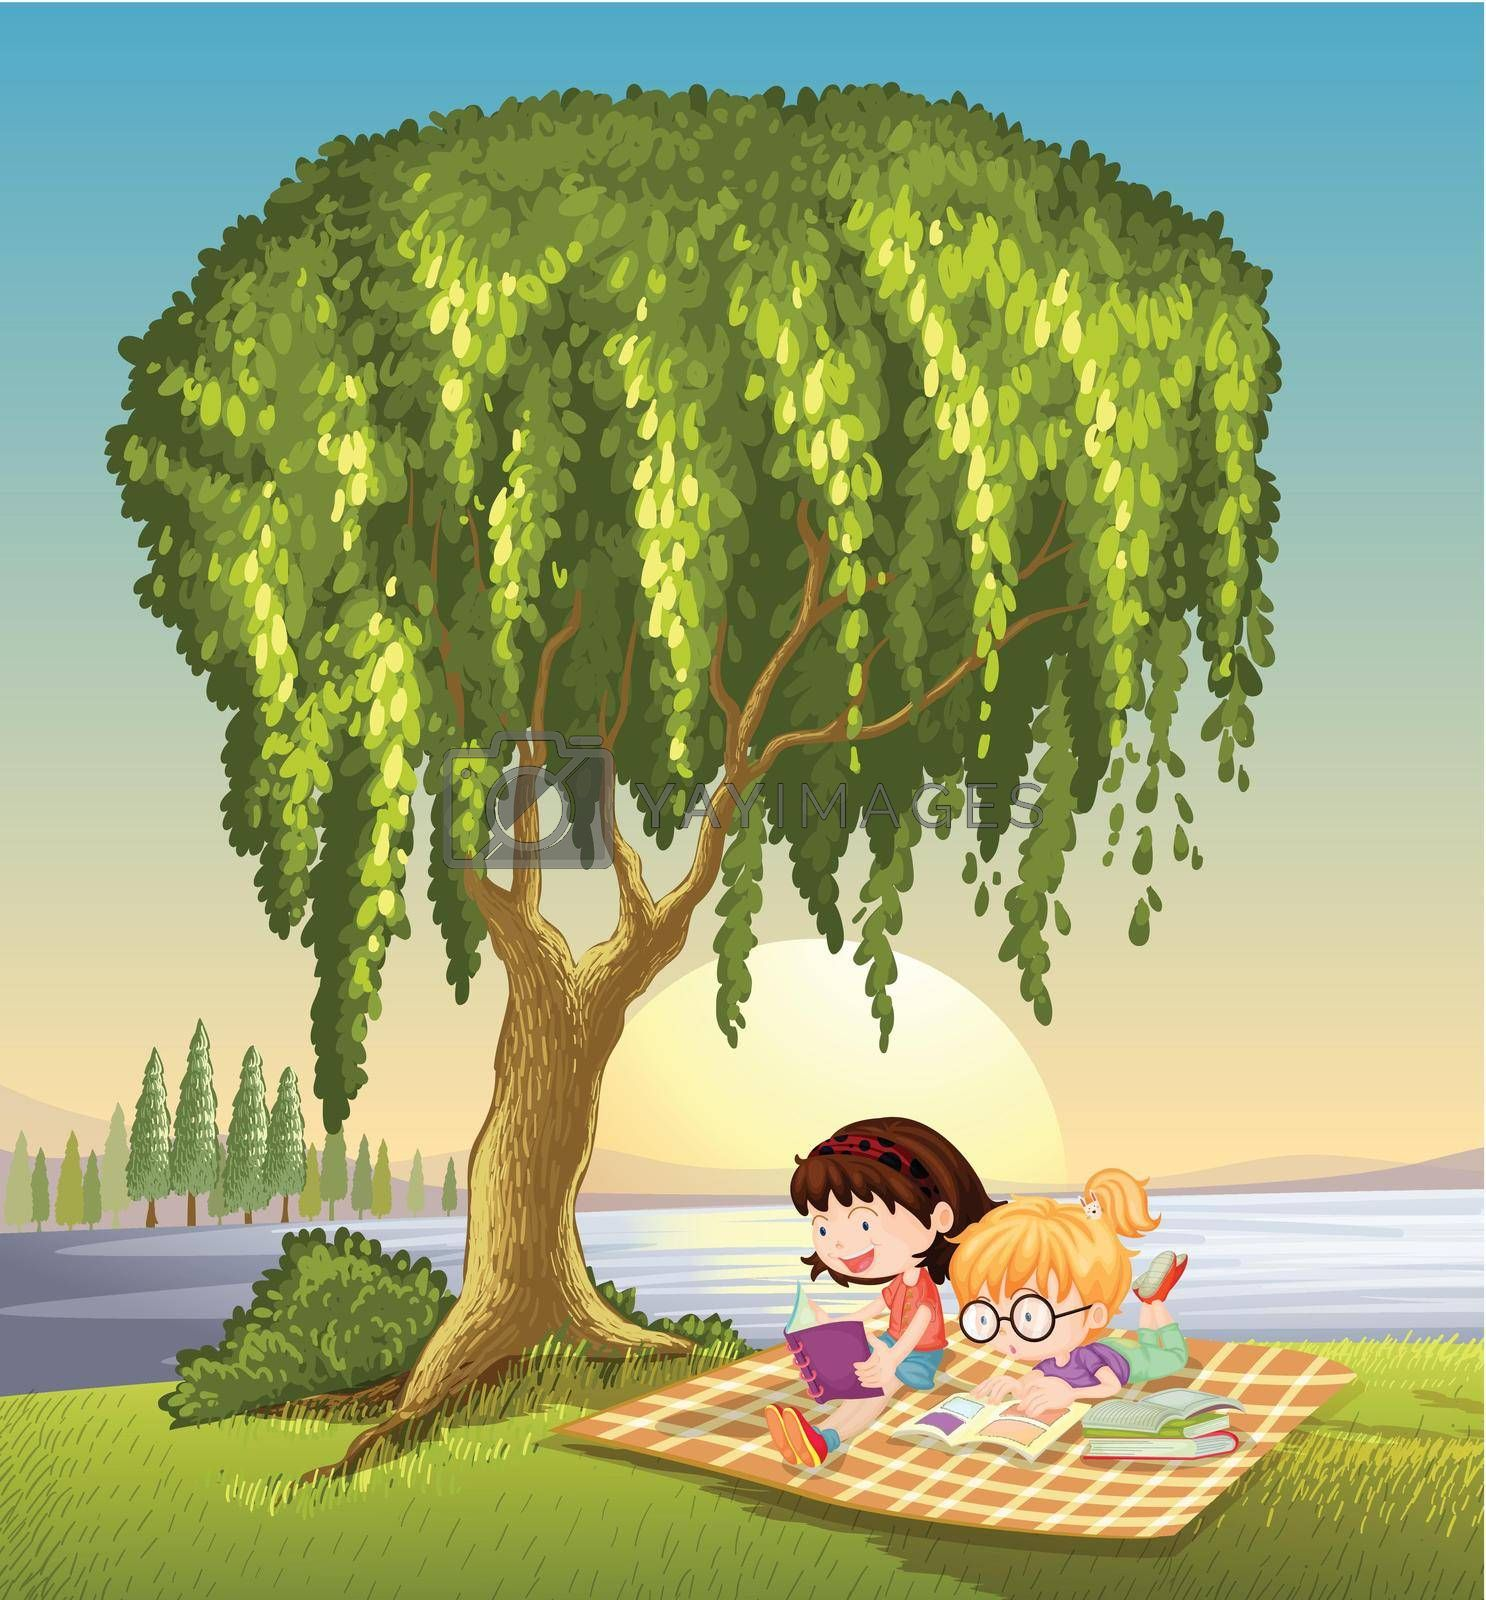 illustration of girls and tree in a beautiful nature